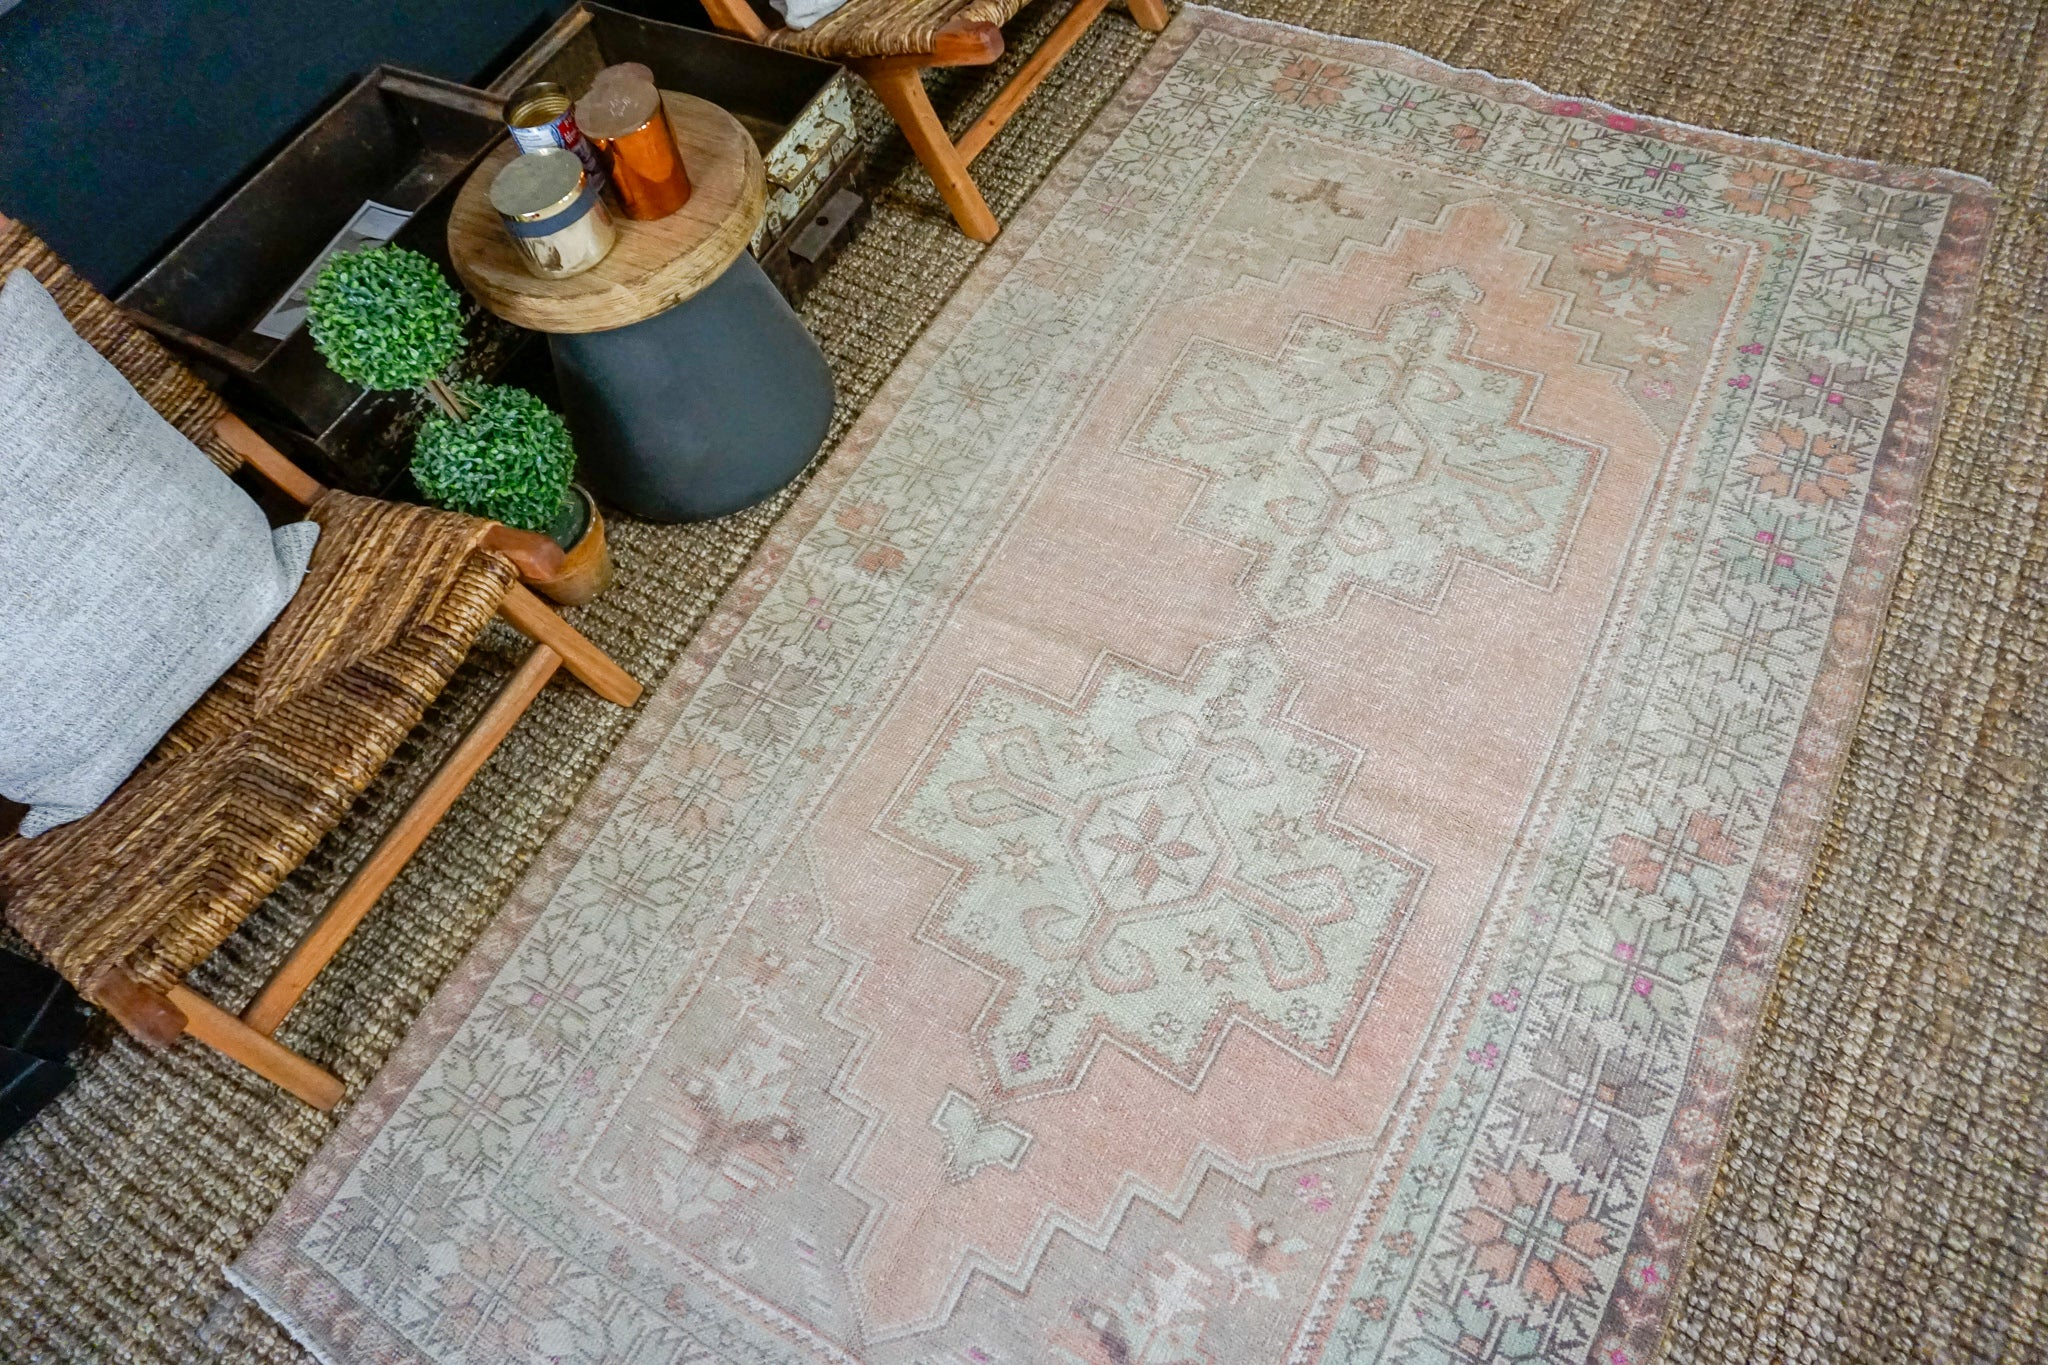 4'6 x 8'2 Vintage Turkish Oushak Carpet Muted Terra Cotta and Gray